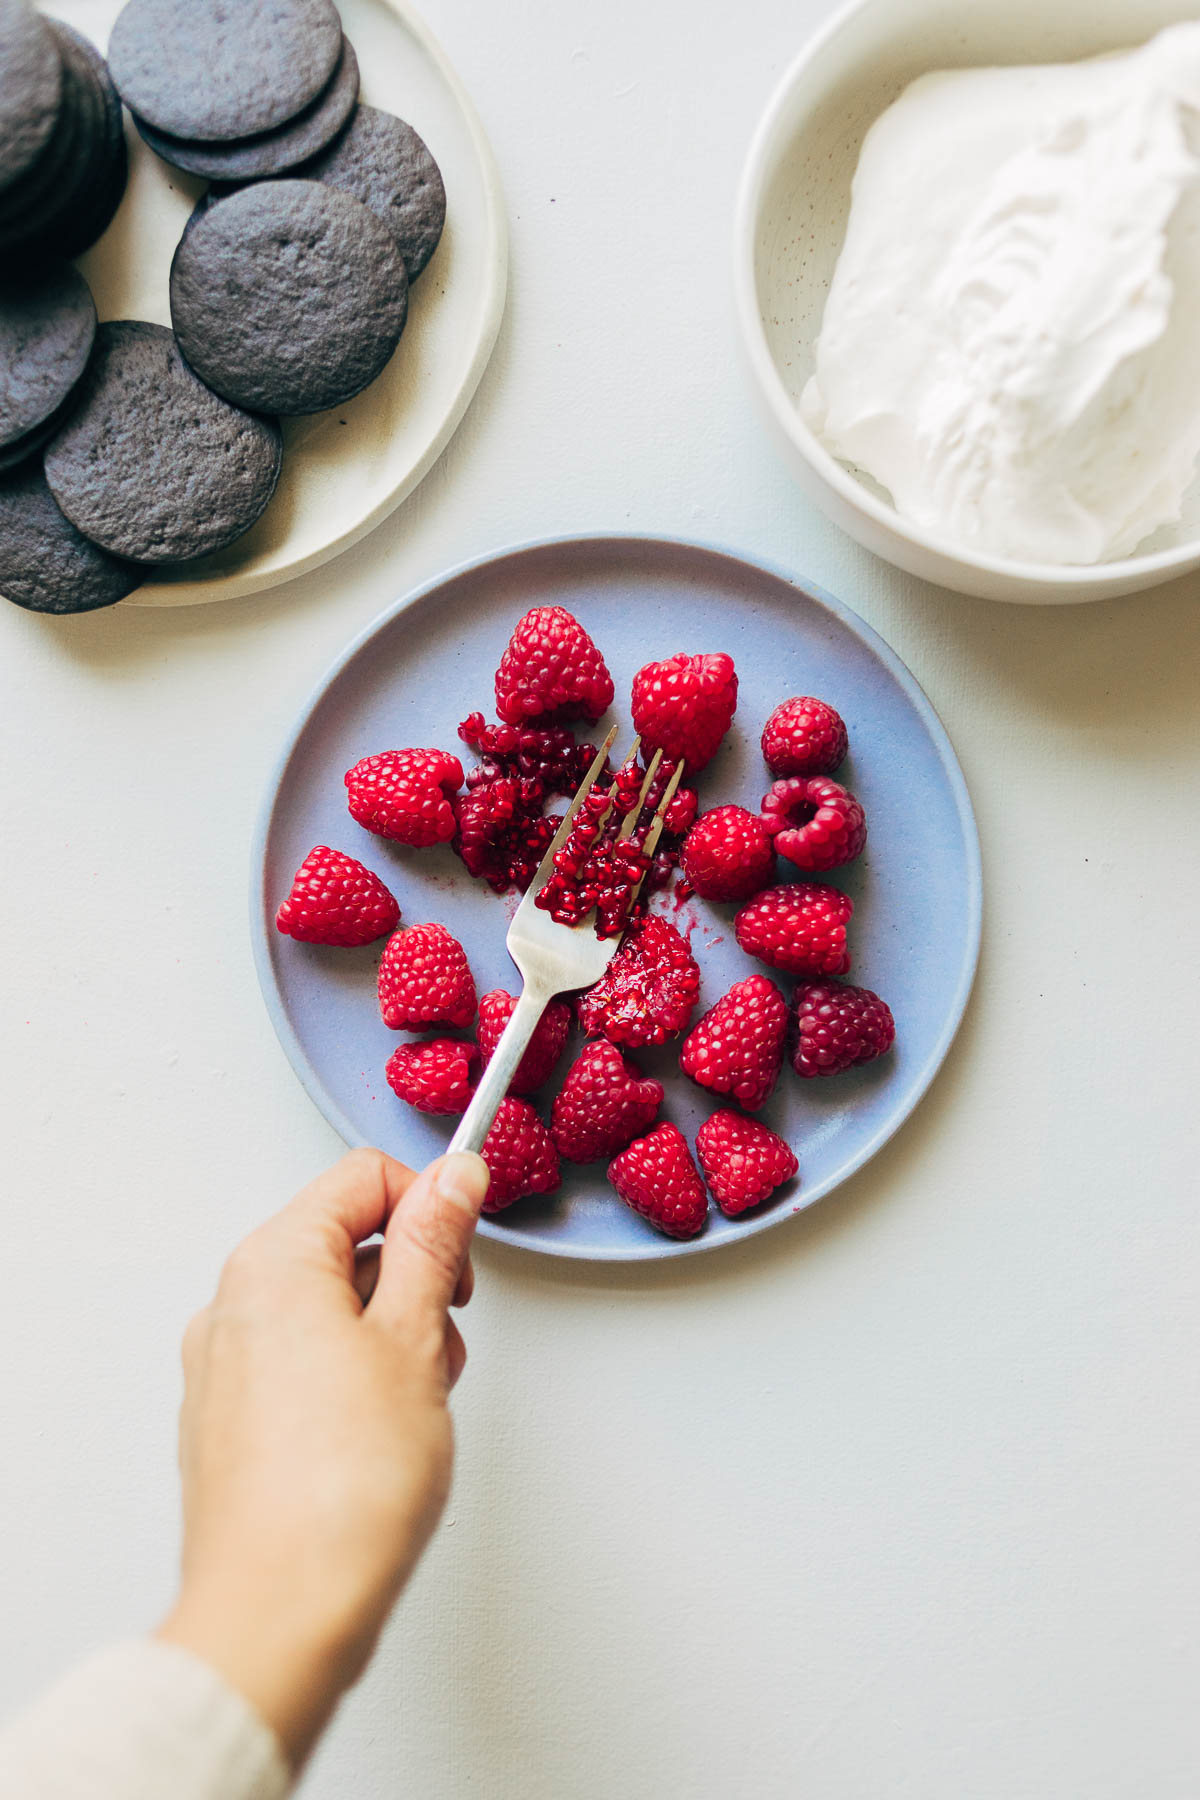 Mashing raspberries with a fork on a plate.